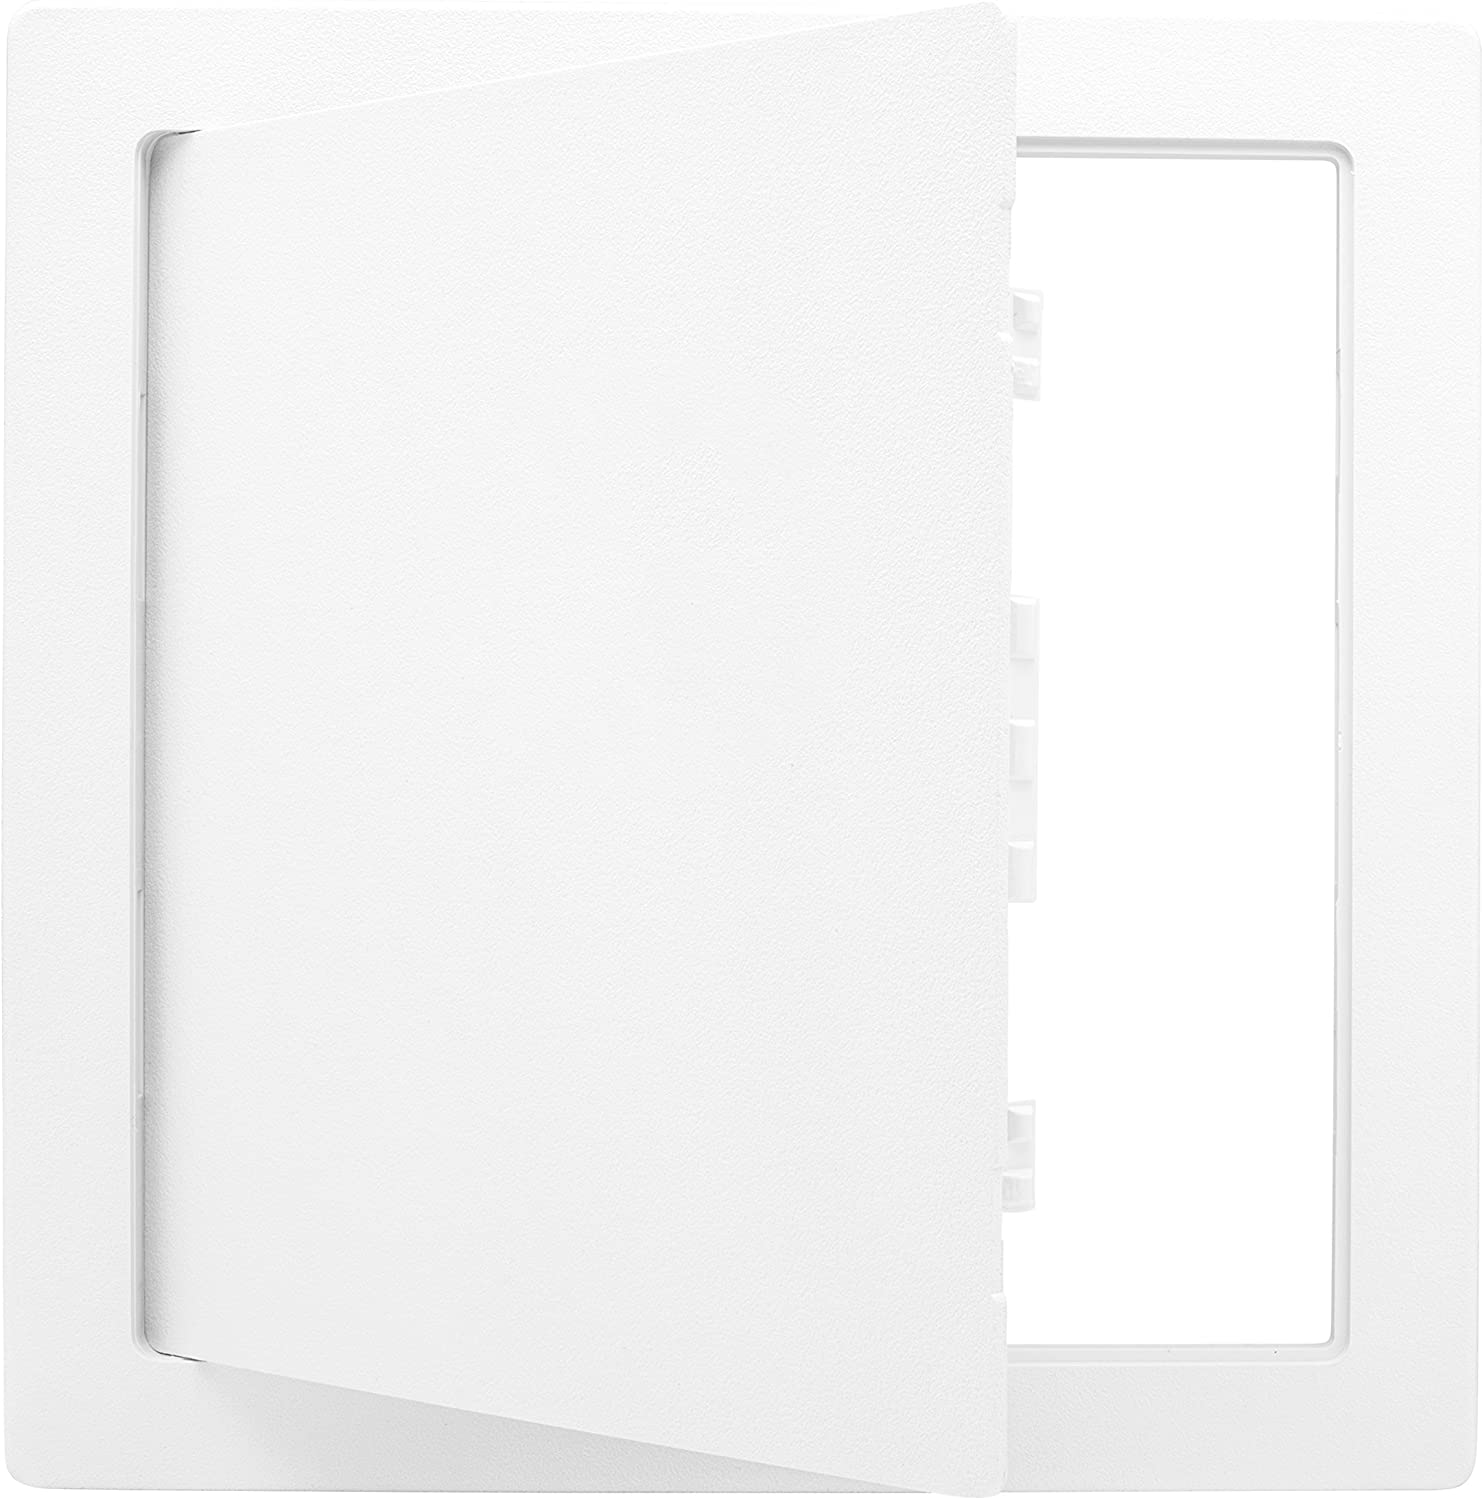 Morvat Plastic Access Panel 14 X 14, Access Door for Drywall, Access Panel for Drywall, Wall Access Panel, Plumbing Access Panel, Heavy Durable Plastic, White